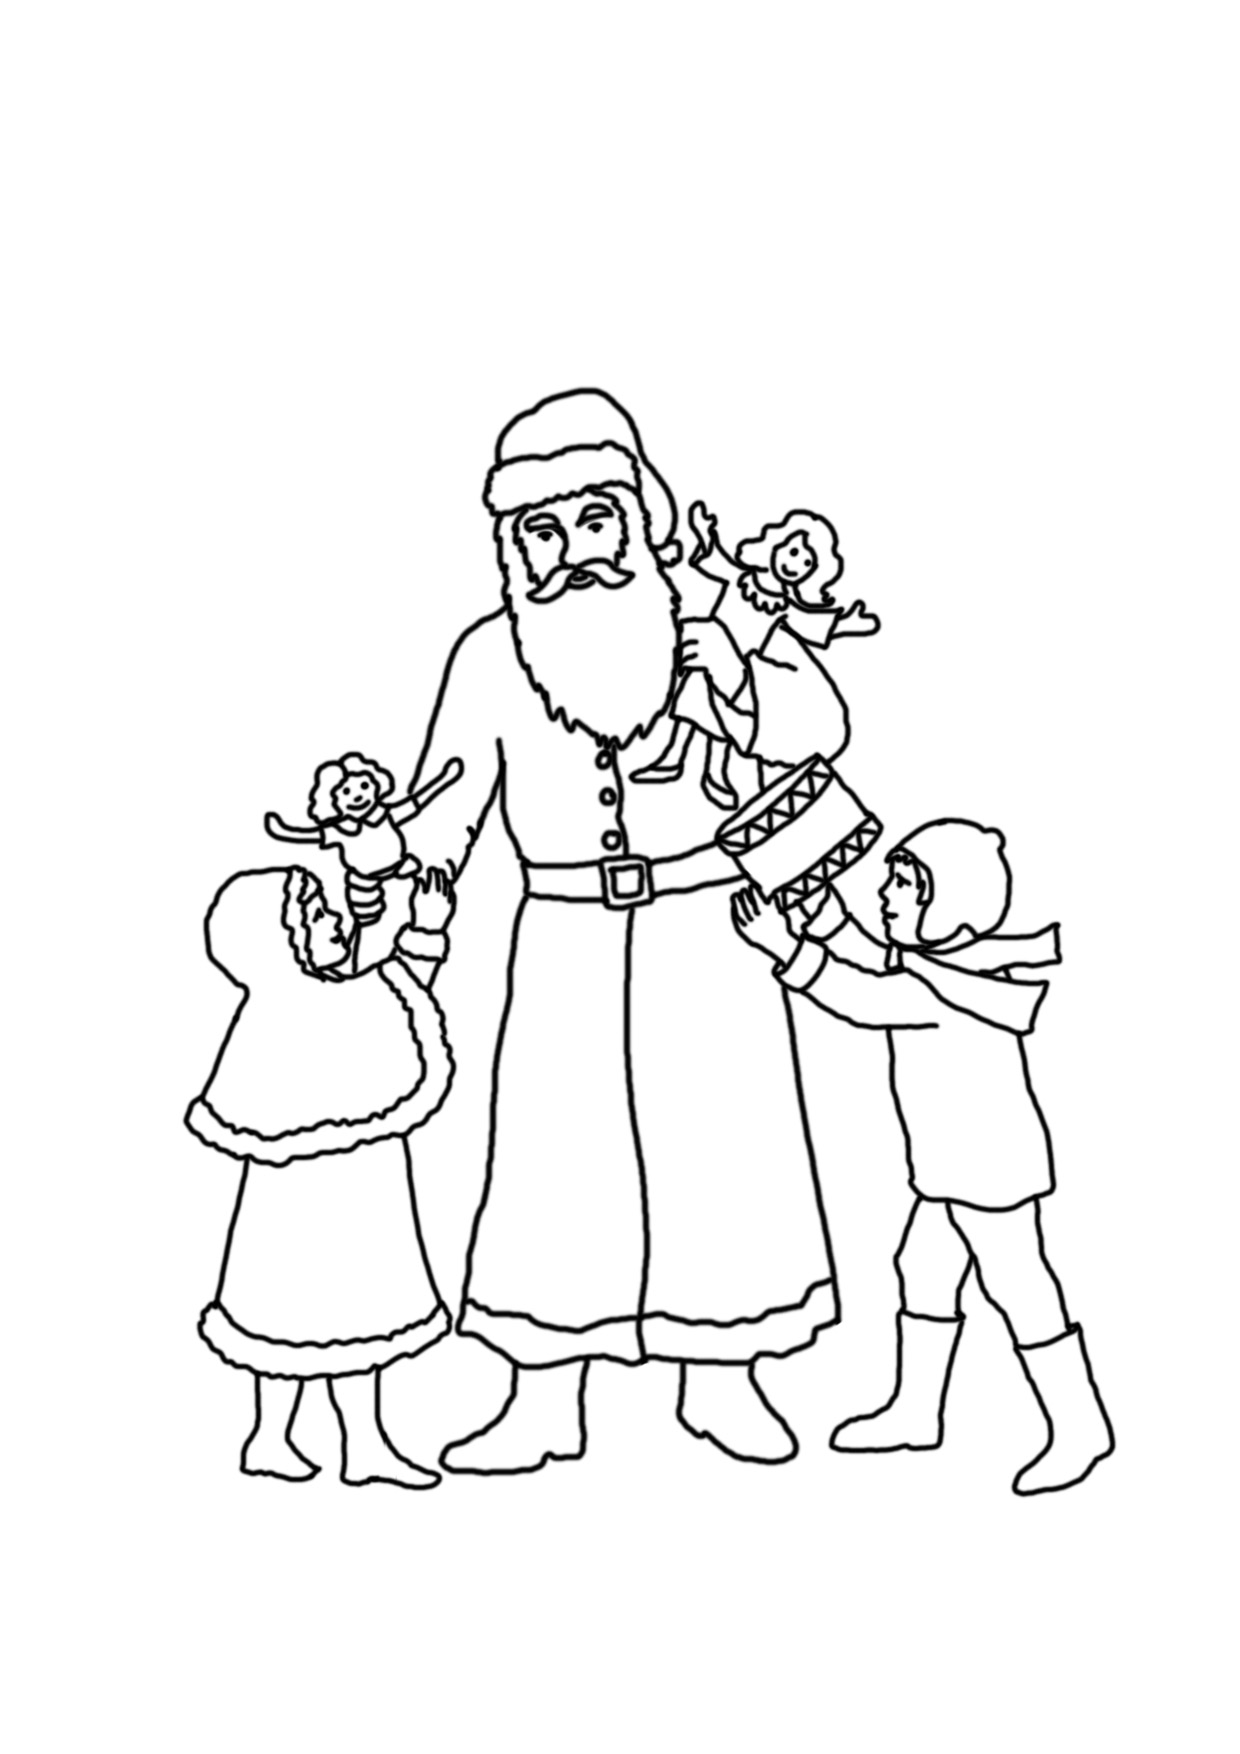 Santa Claus Coat Coloring Pages Sketch Coloring Page